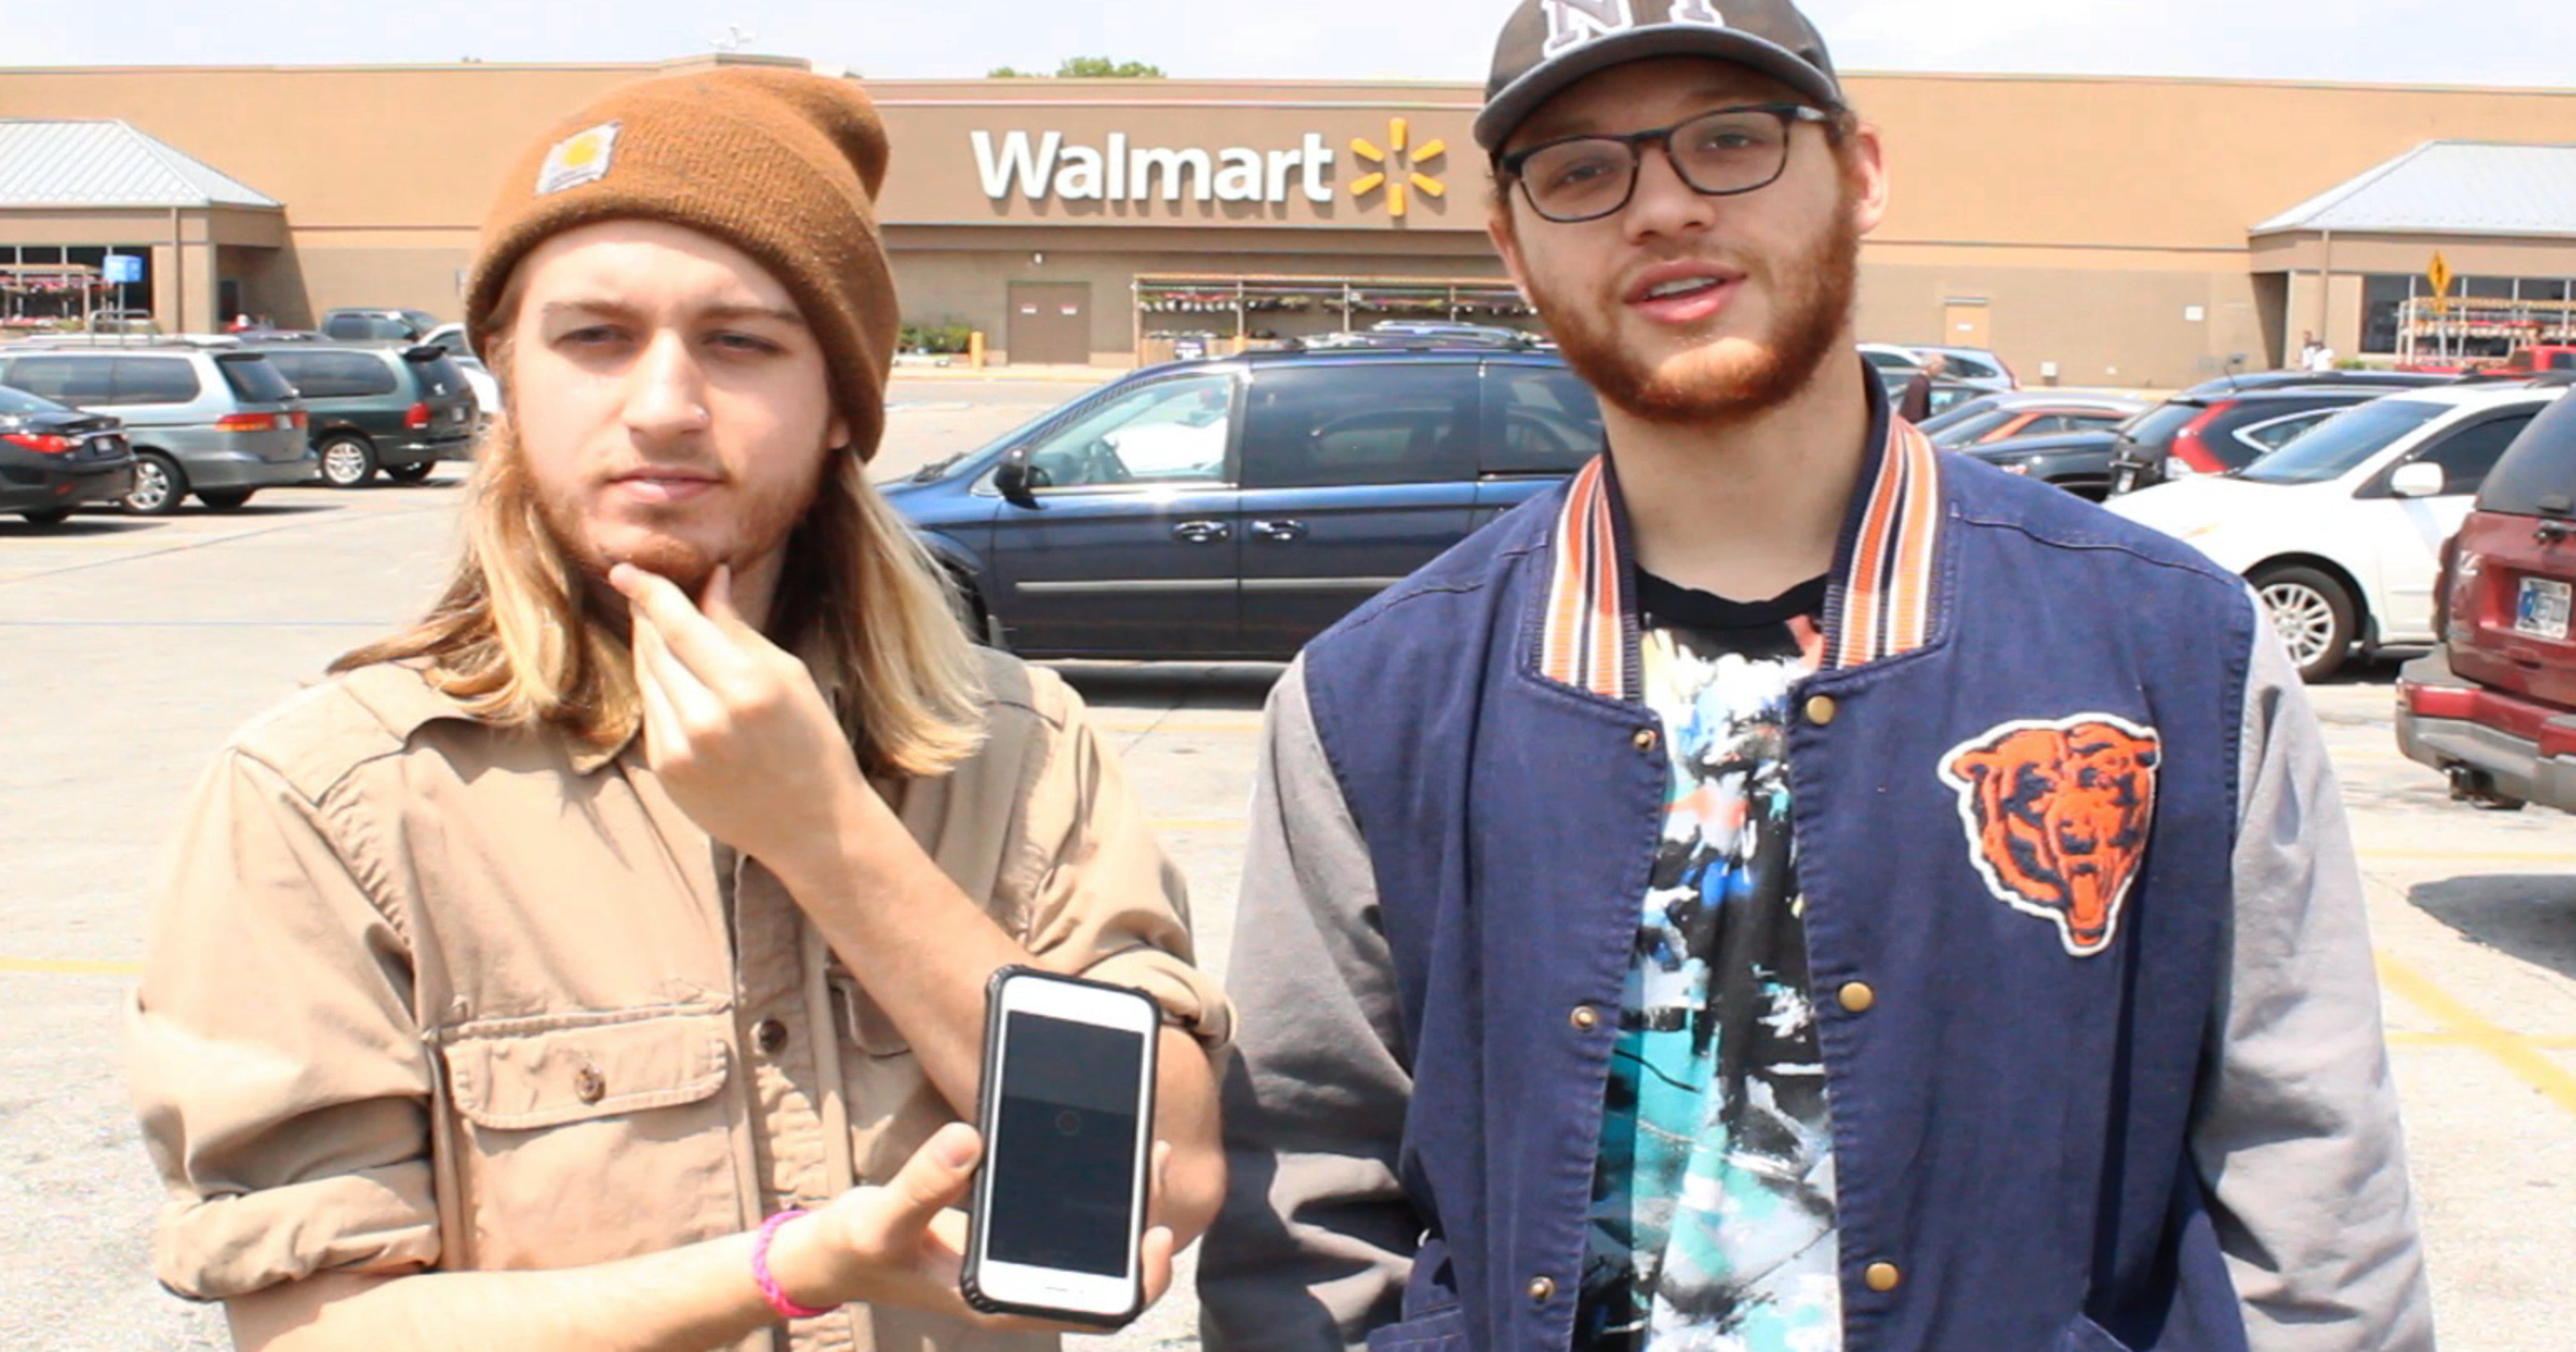 Students Go 48 Hours In Walmart Without Going Insane Getting Arrested